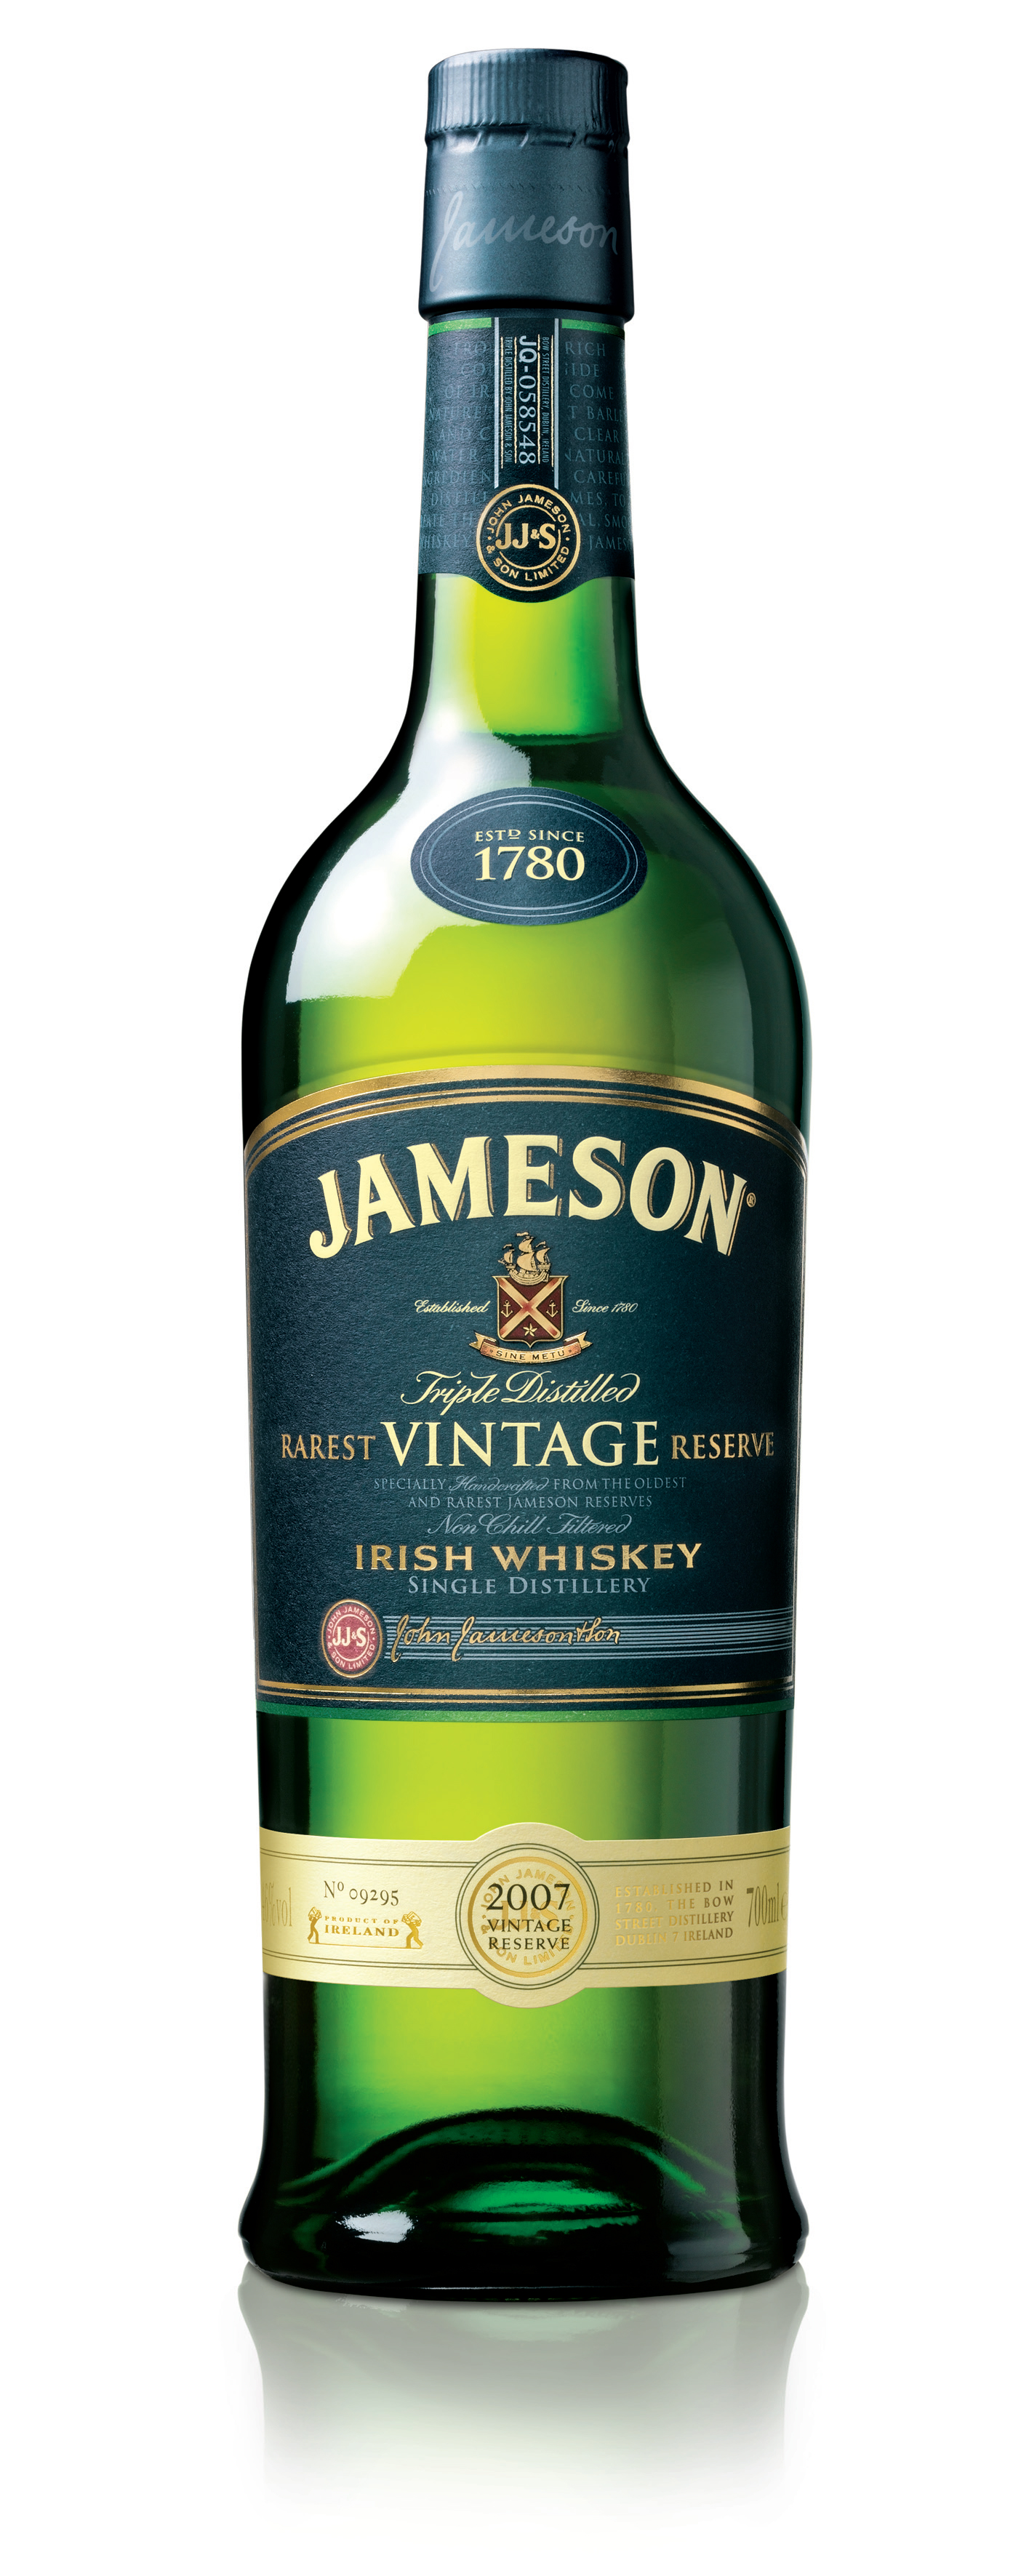 Jameson Irish Whiskey Tweet Tasting | WhiskyCorner.co.uk